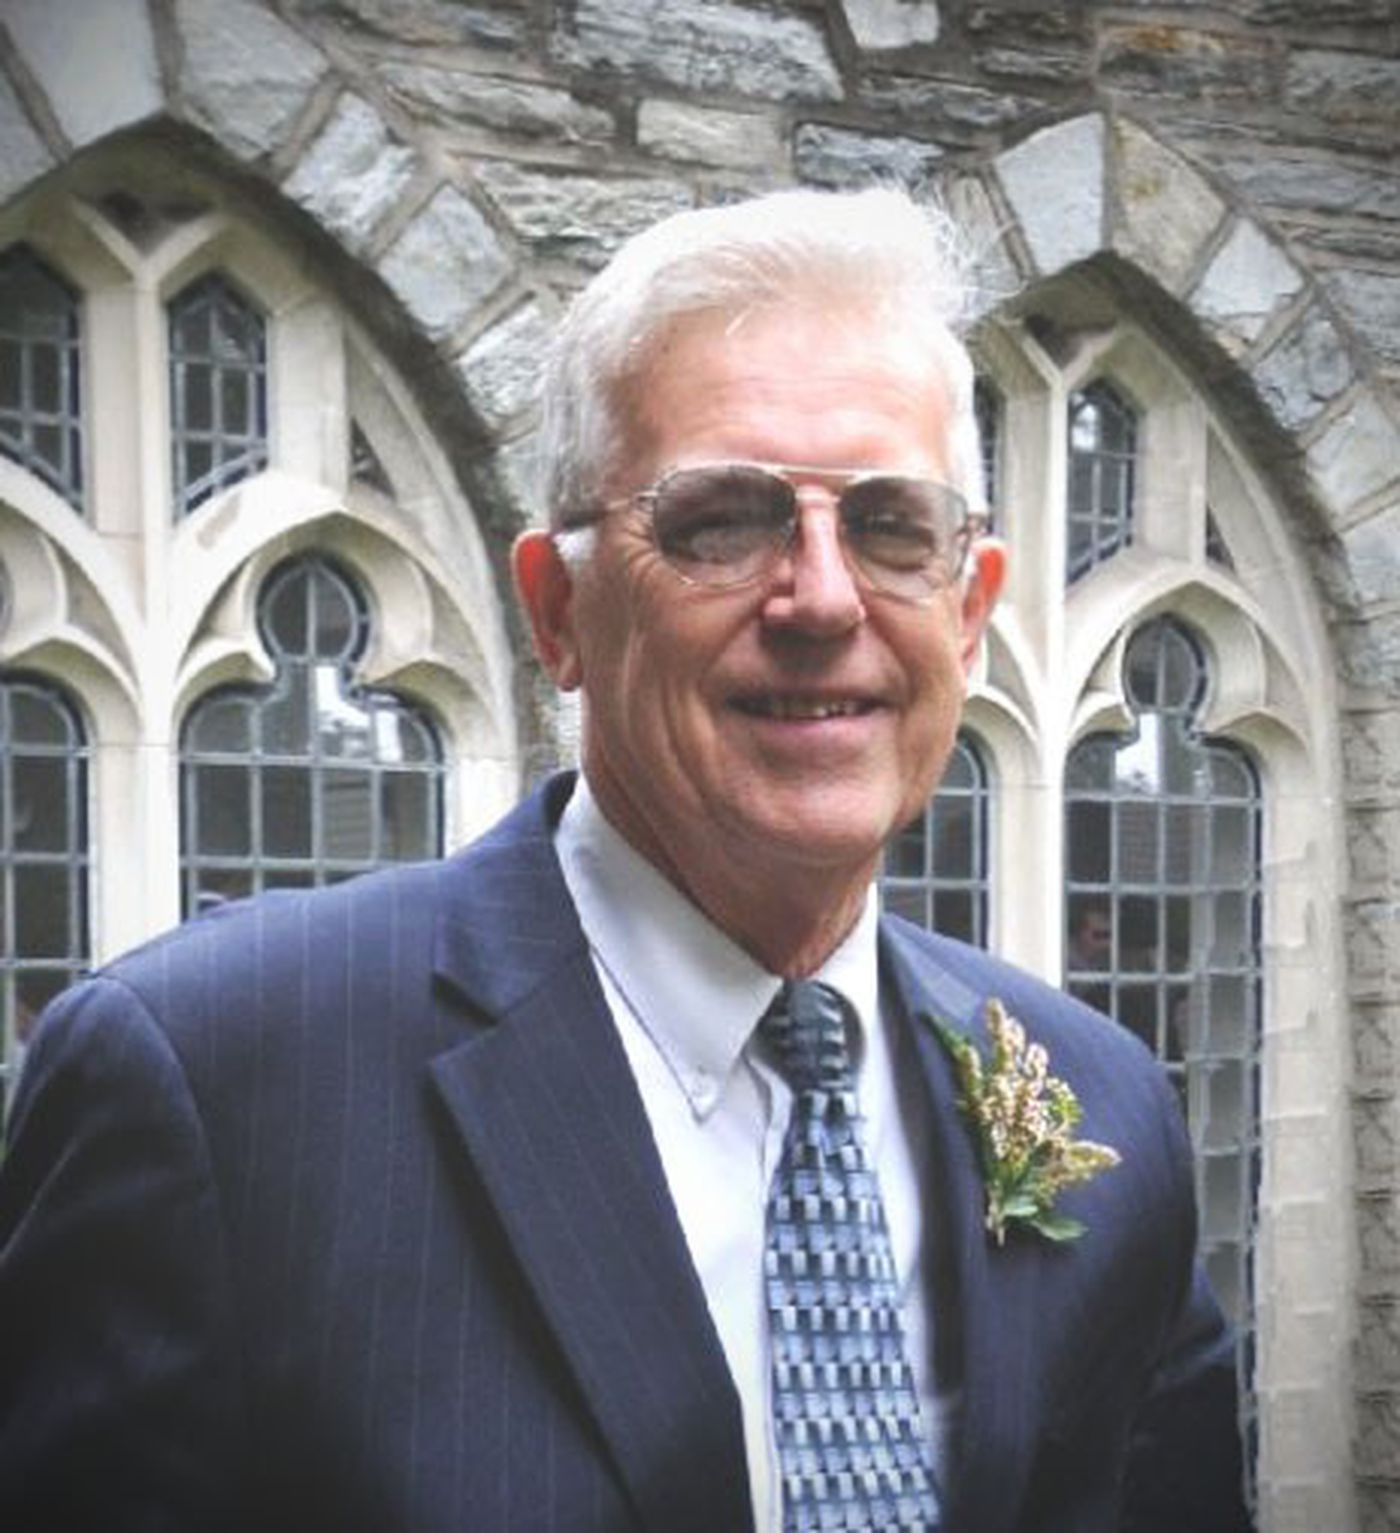 William E. Rumberger Jr., 81, longtime Boeing engineer and inventor